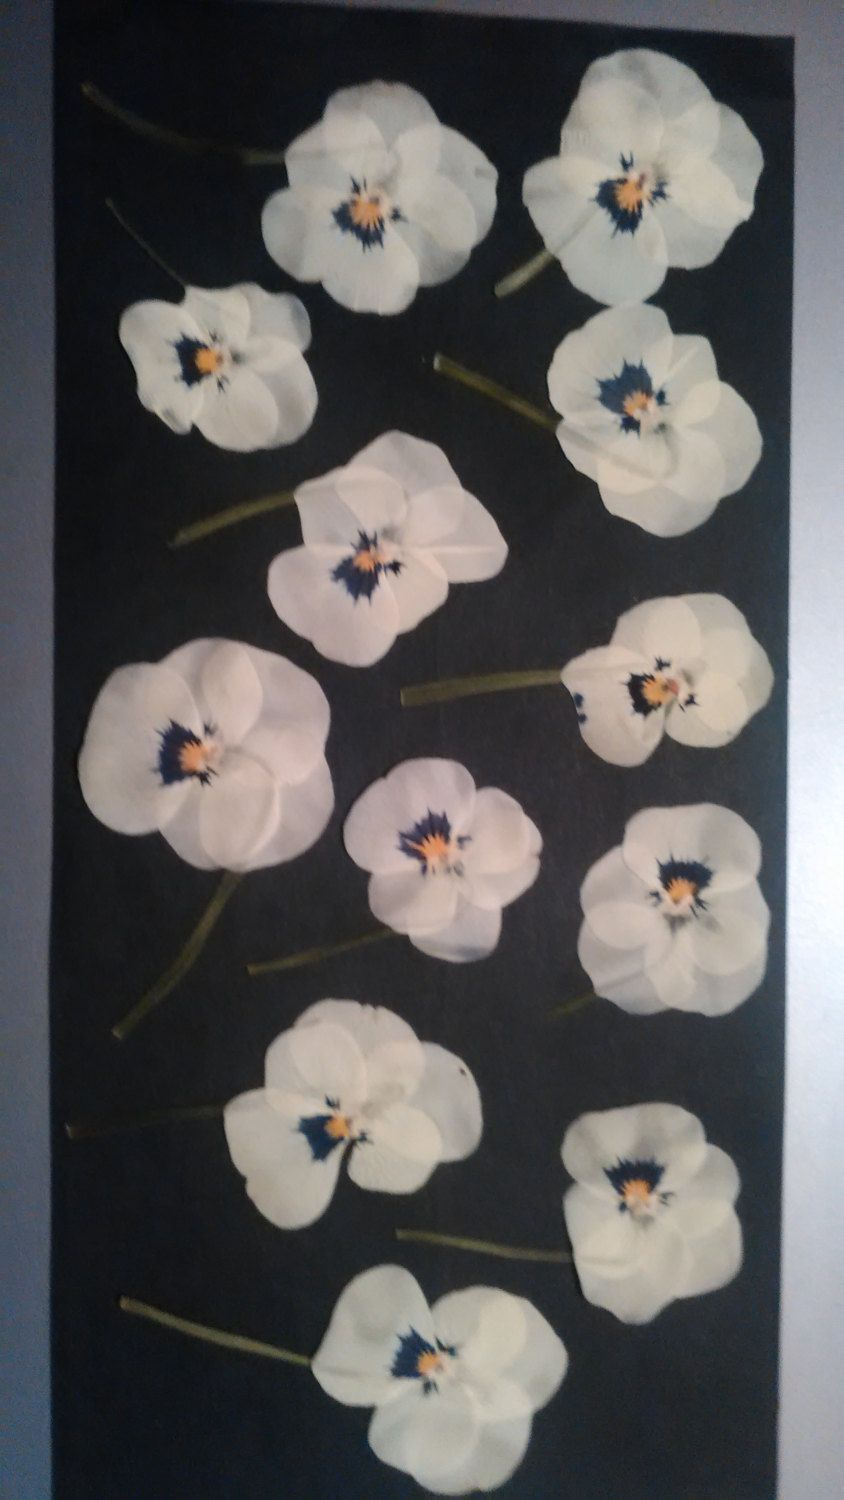 How to scrapbook pressed flowers - Real Pressed Flowers White Pansy Ready For Frame Scrapbooking Card Making